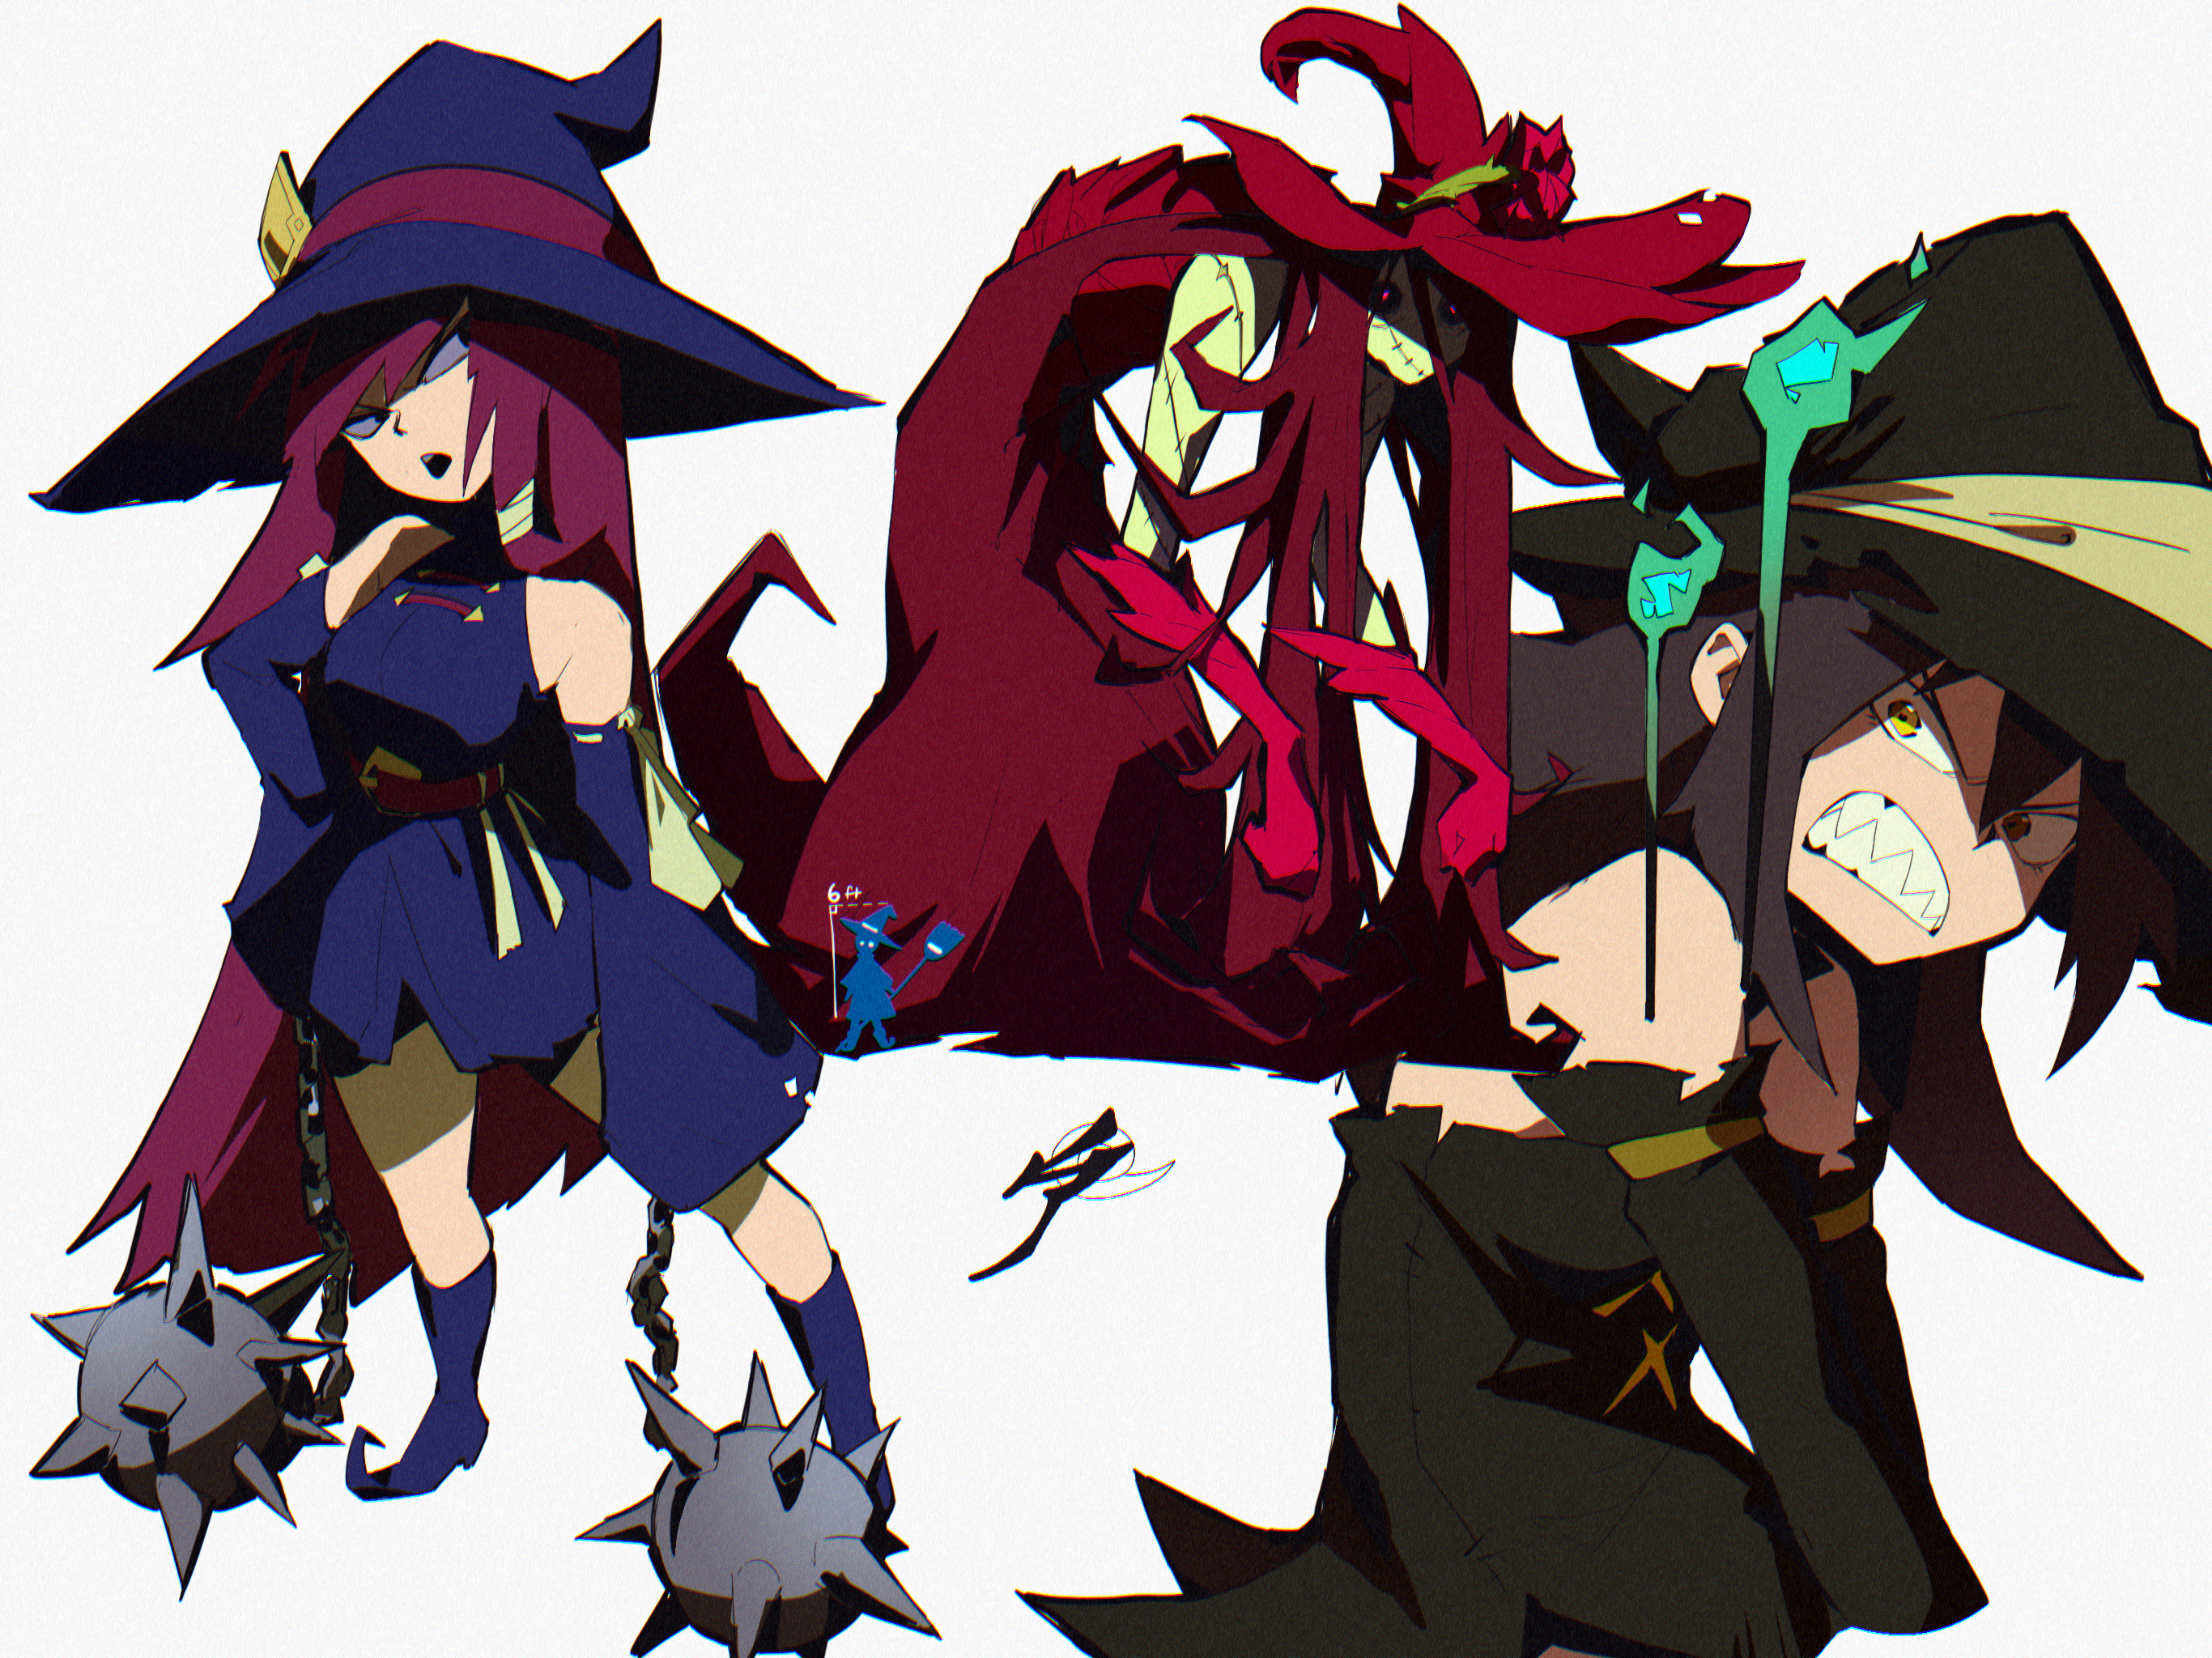 Witch Concepts